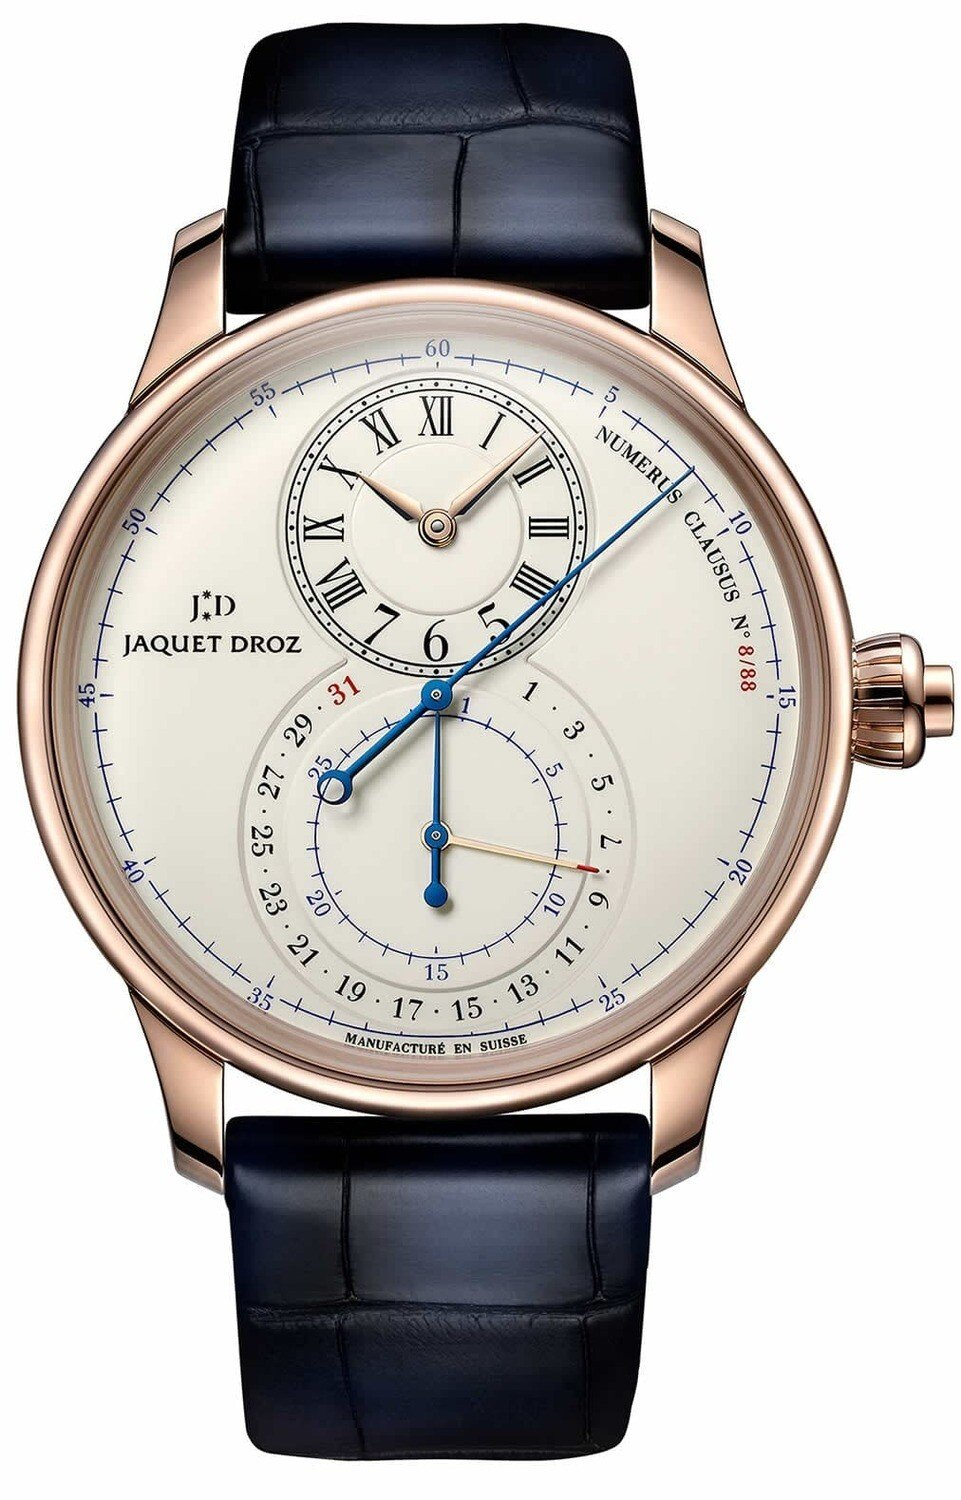 Jaquet Droz Grand Seconde Chronograph Ivory Enamel